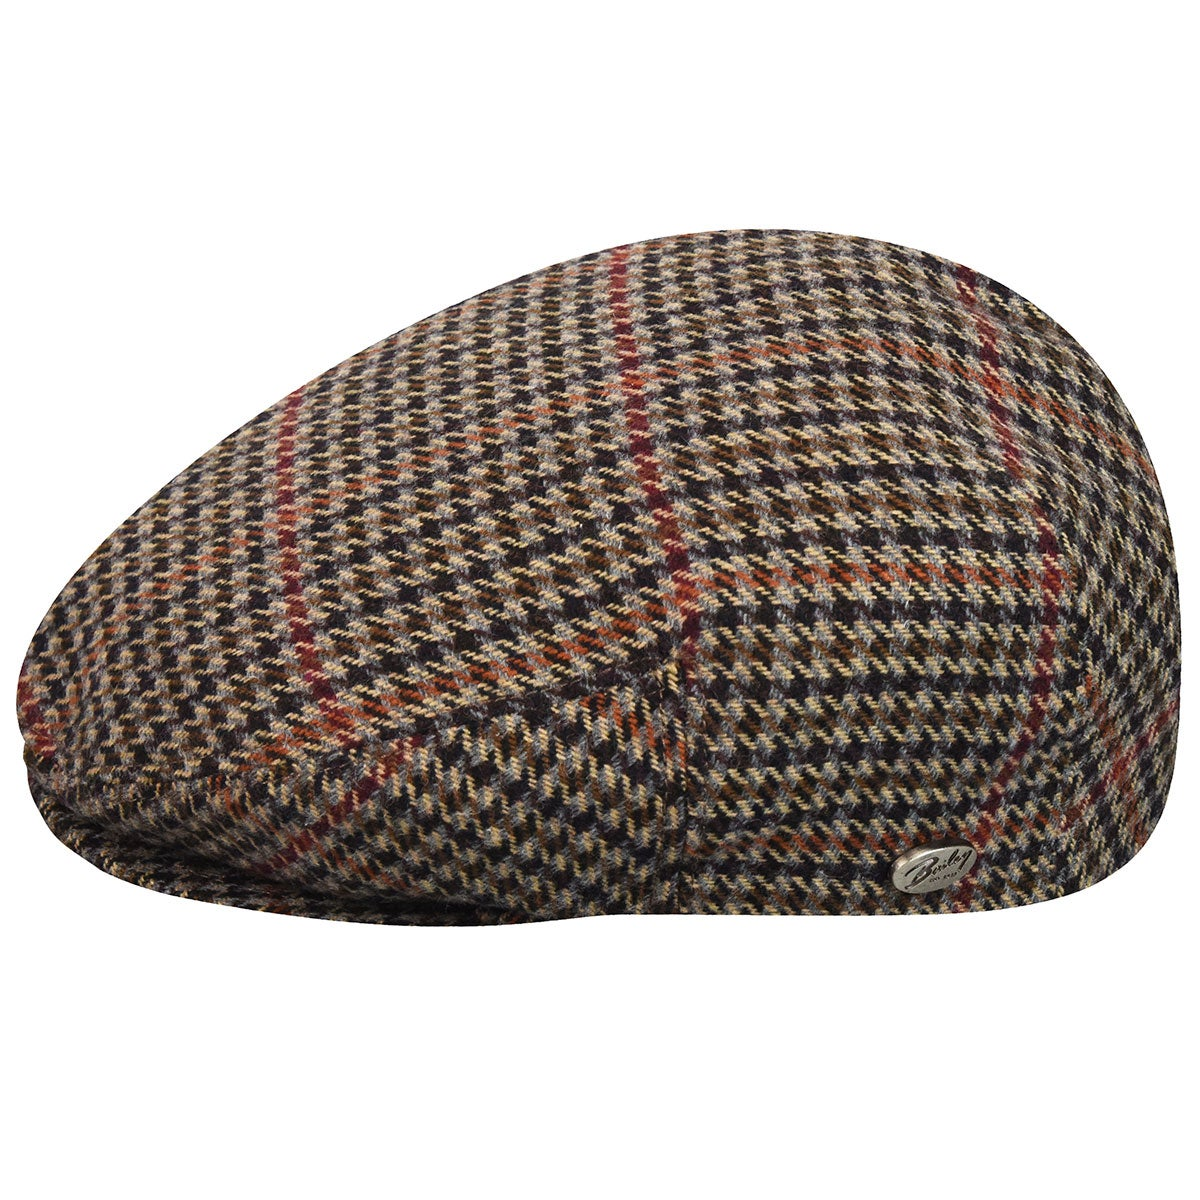 1930s Men's Fashion Guide- What Did Men Wear? Lord Plaid Ivy Cap $85.00 AT vintagedancer.com